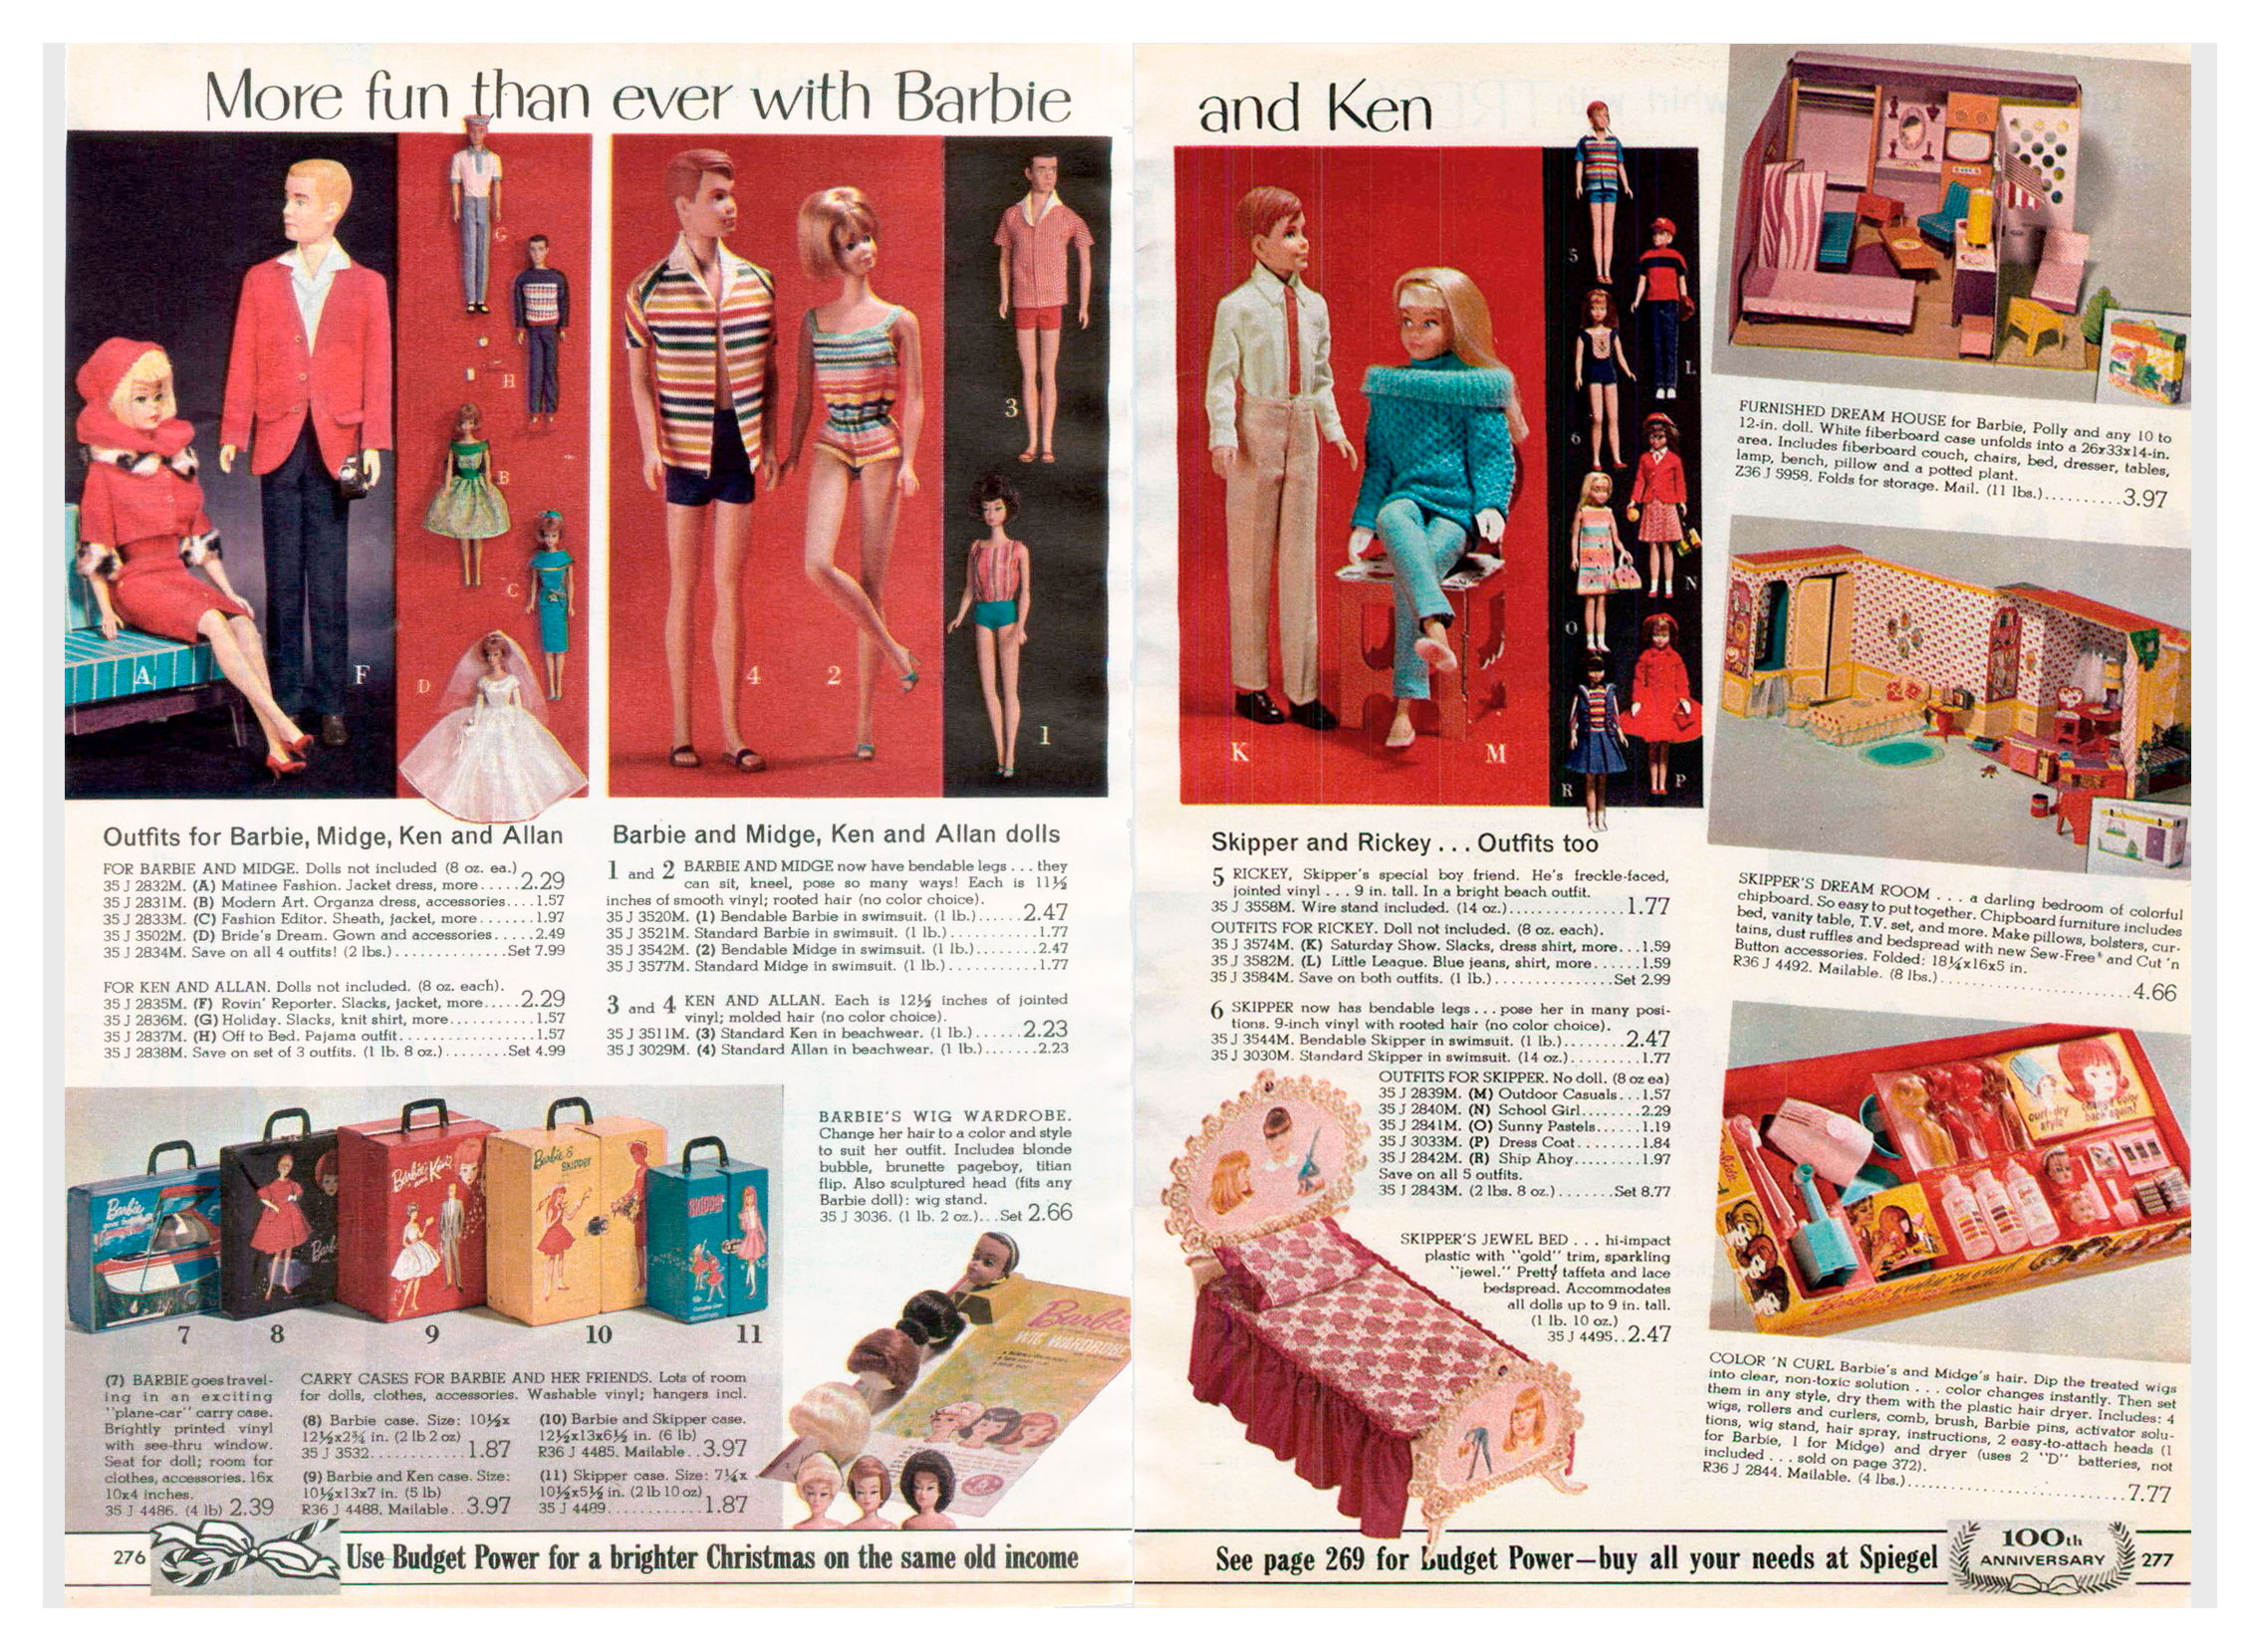 From 1965 Spiegel Christmas catalogue